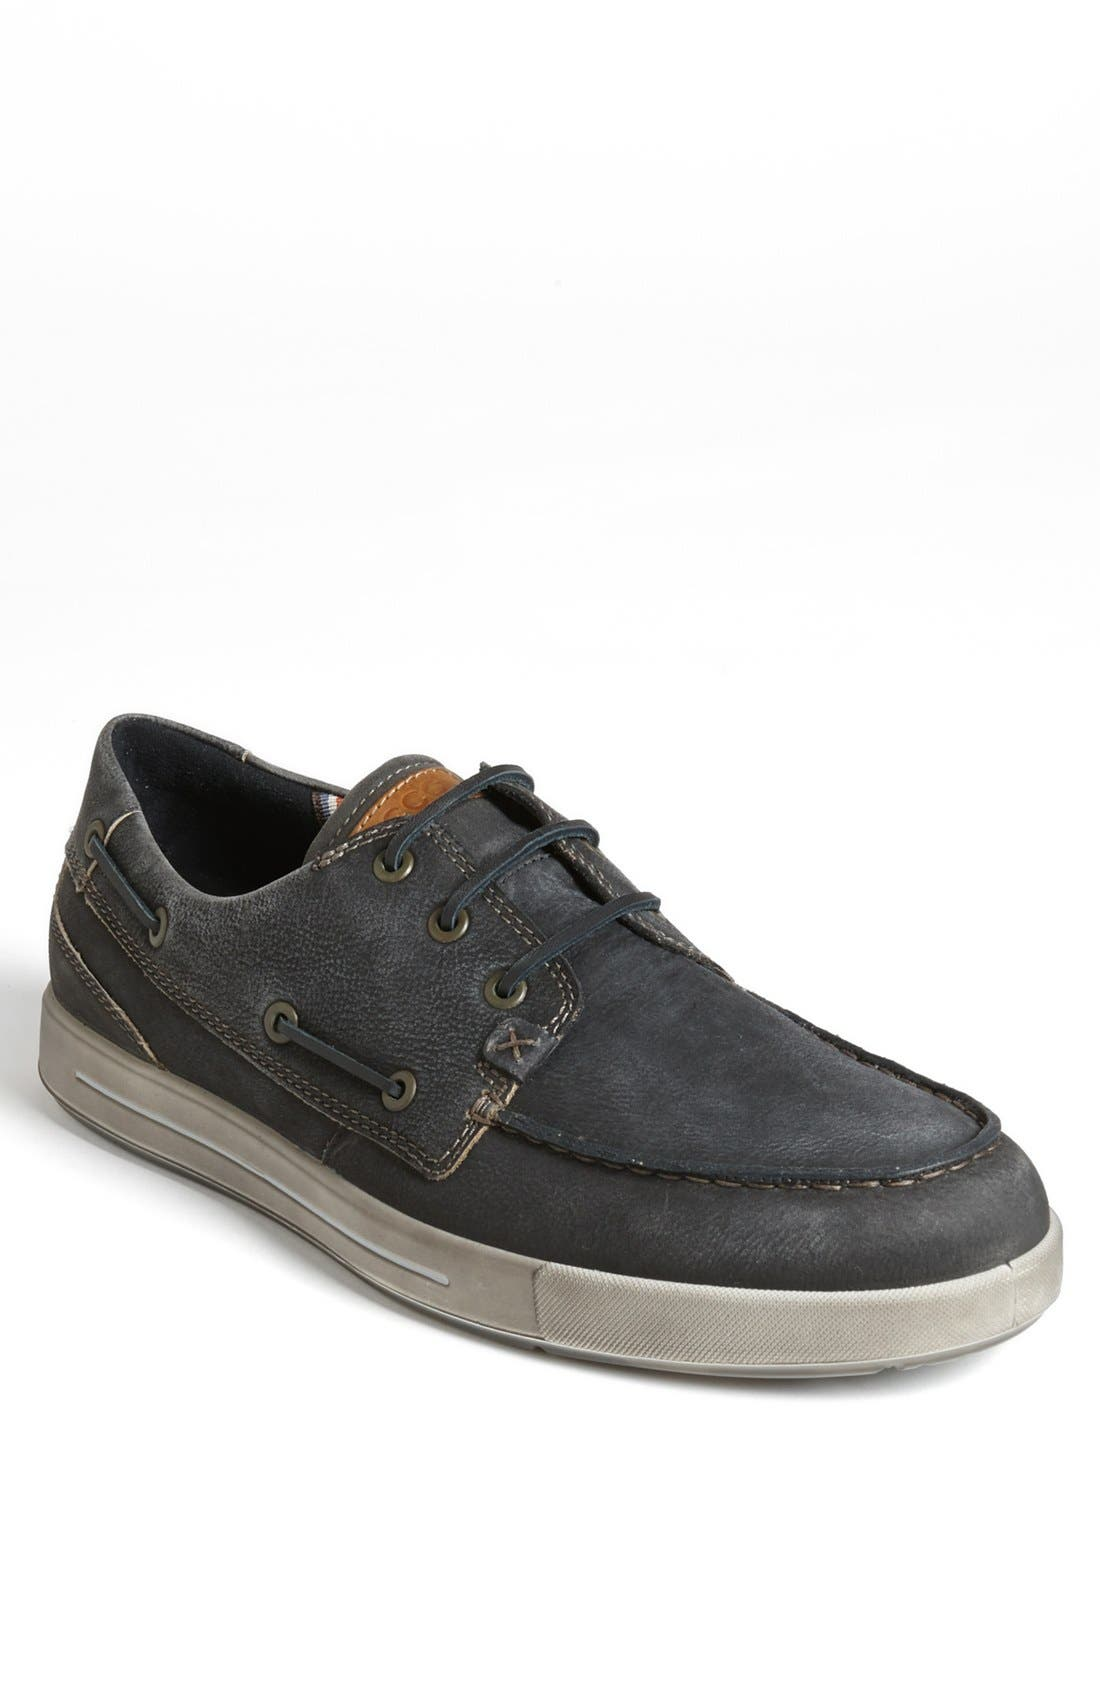 Main Image - ECCO 'Androw' Boat Shoe (Men)